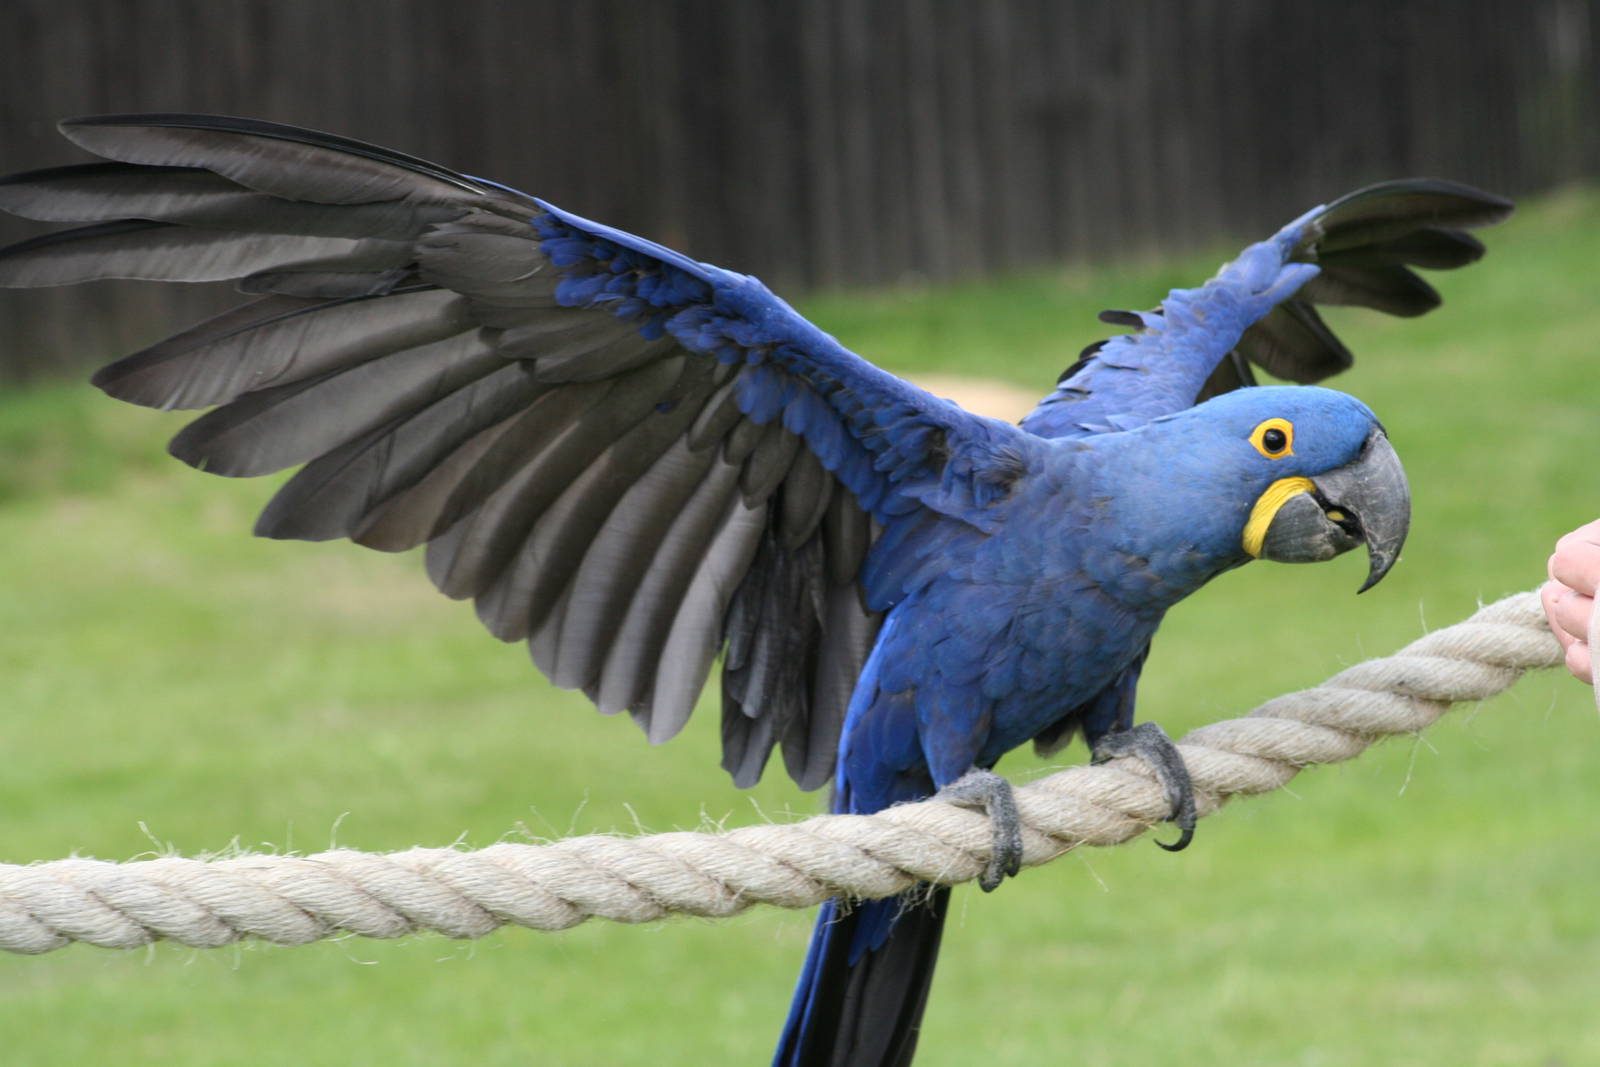 High Resolution Wallpaper | Hyacinth Macaw 1600x1067 px